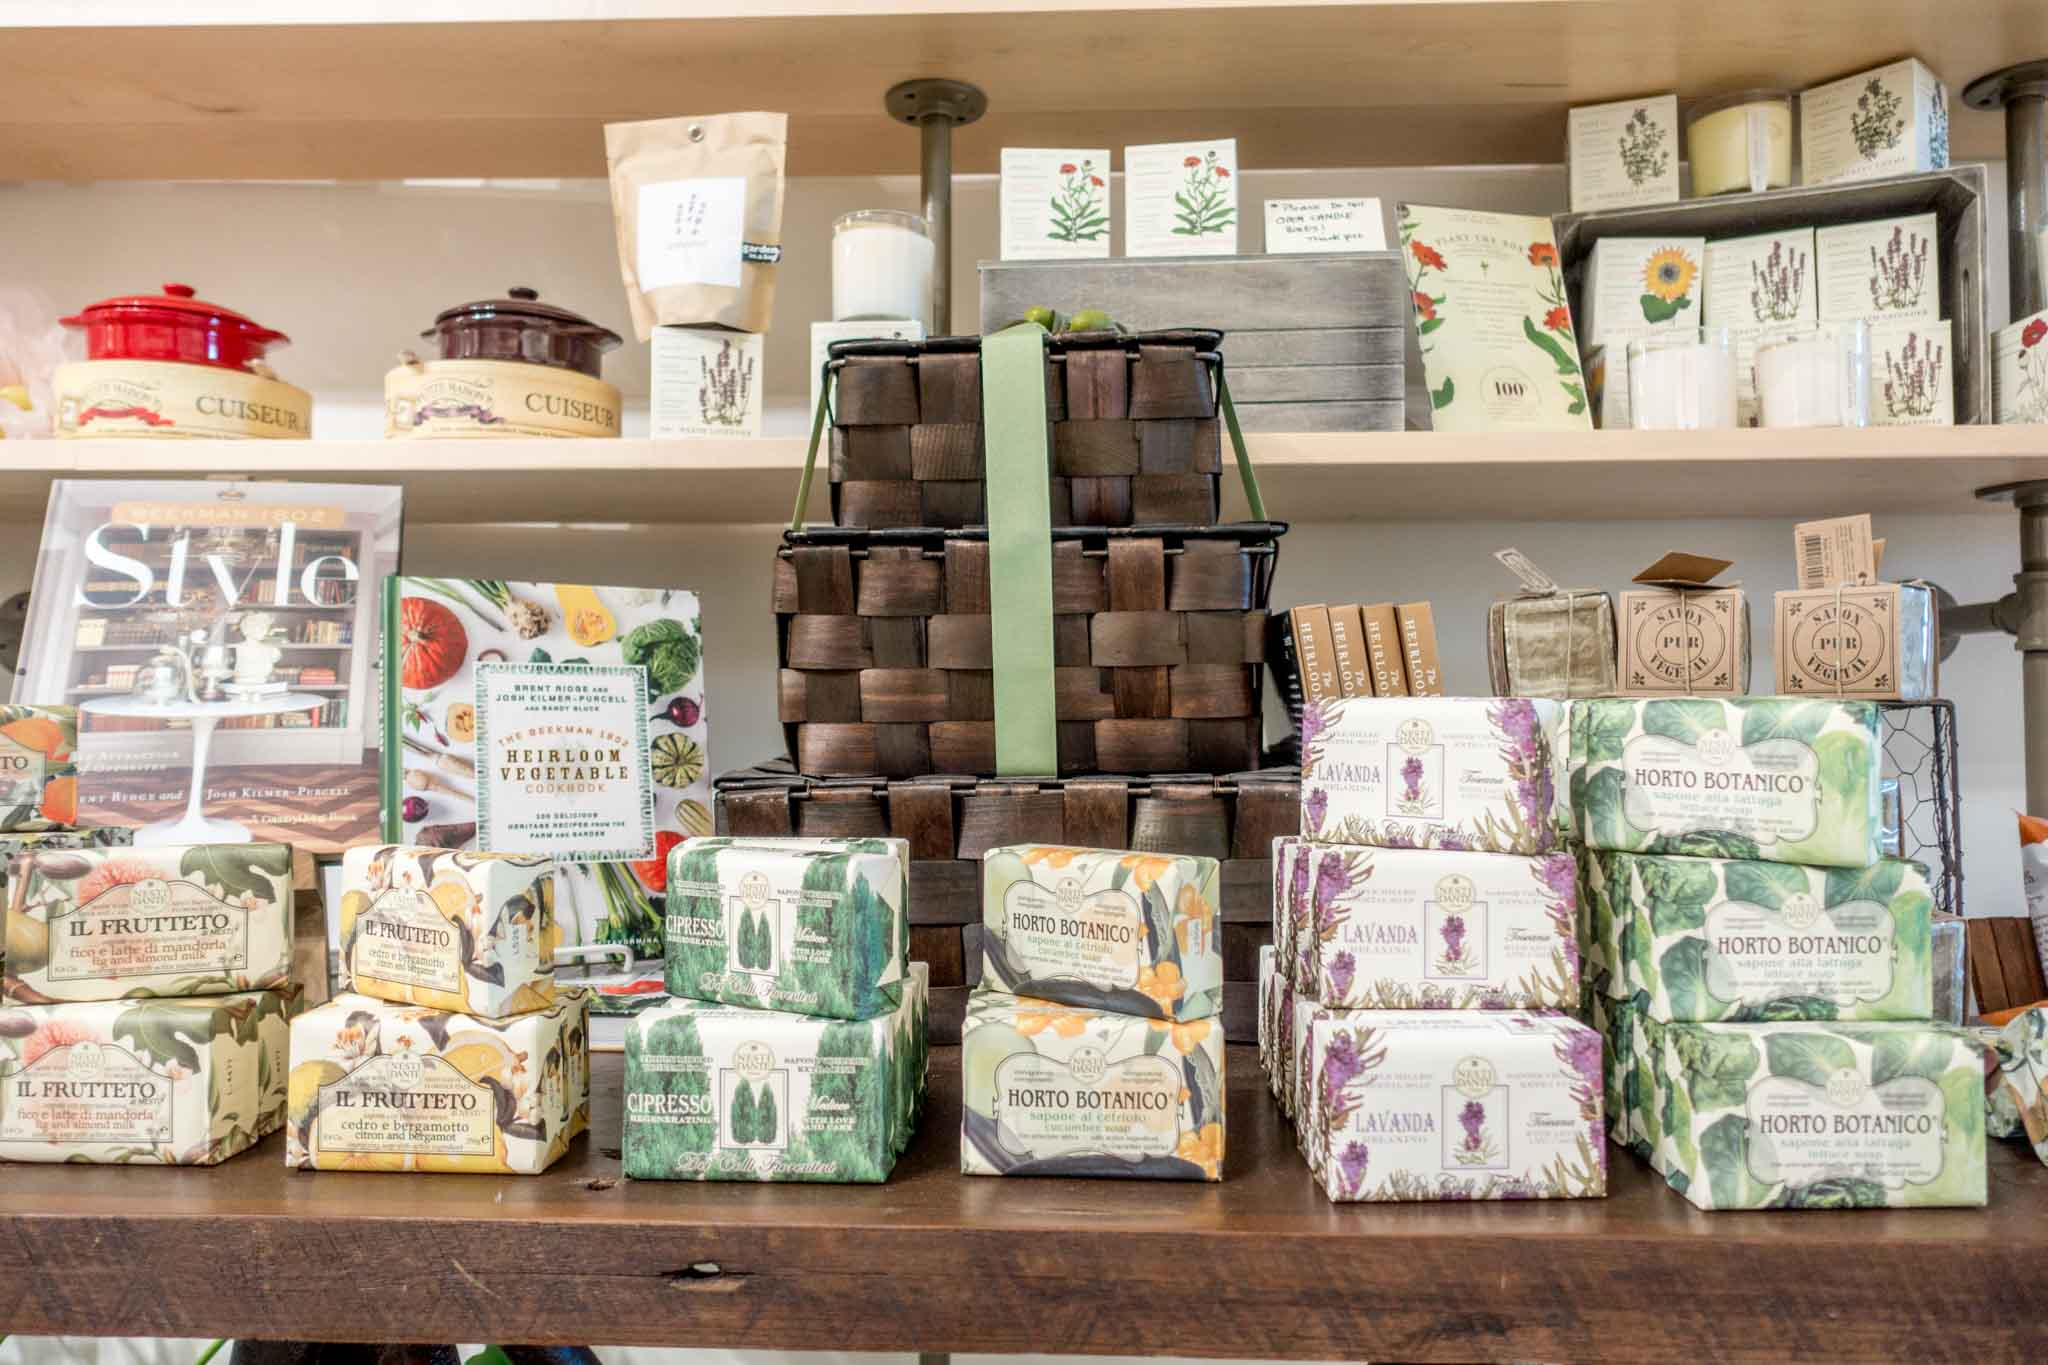 Soap and home items for sale